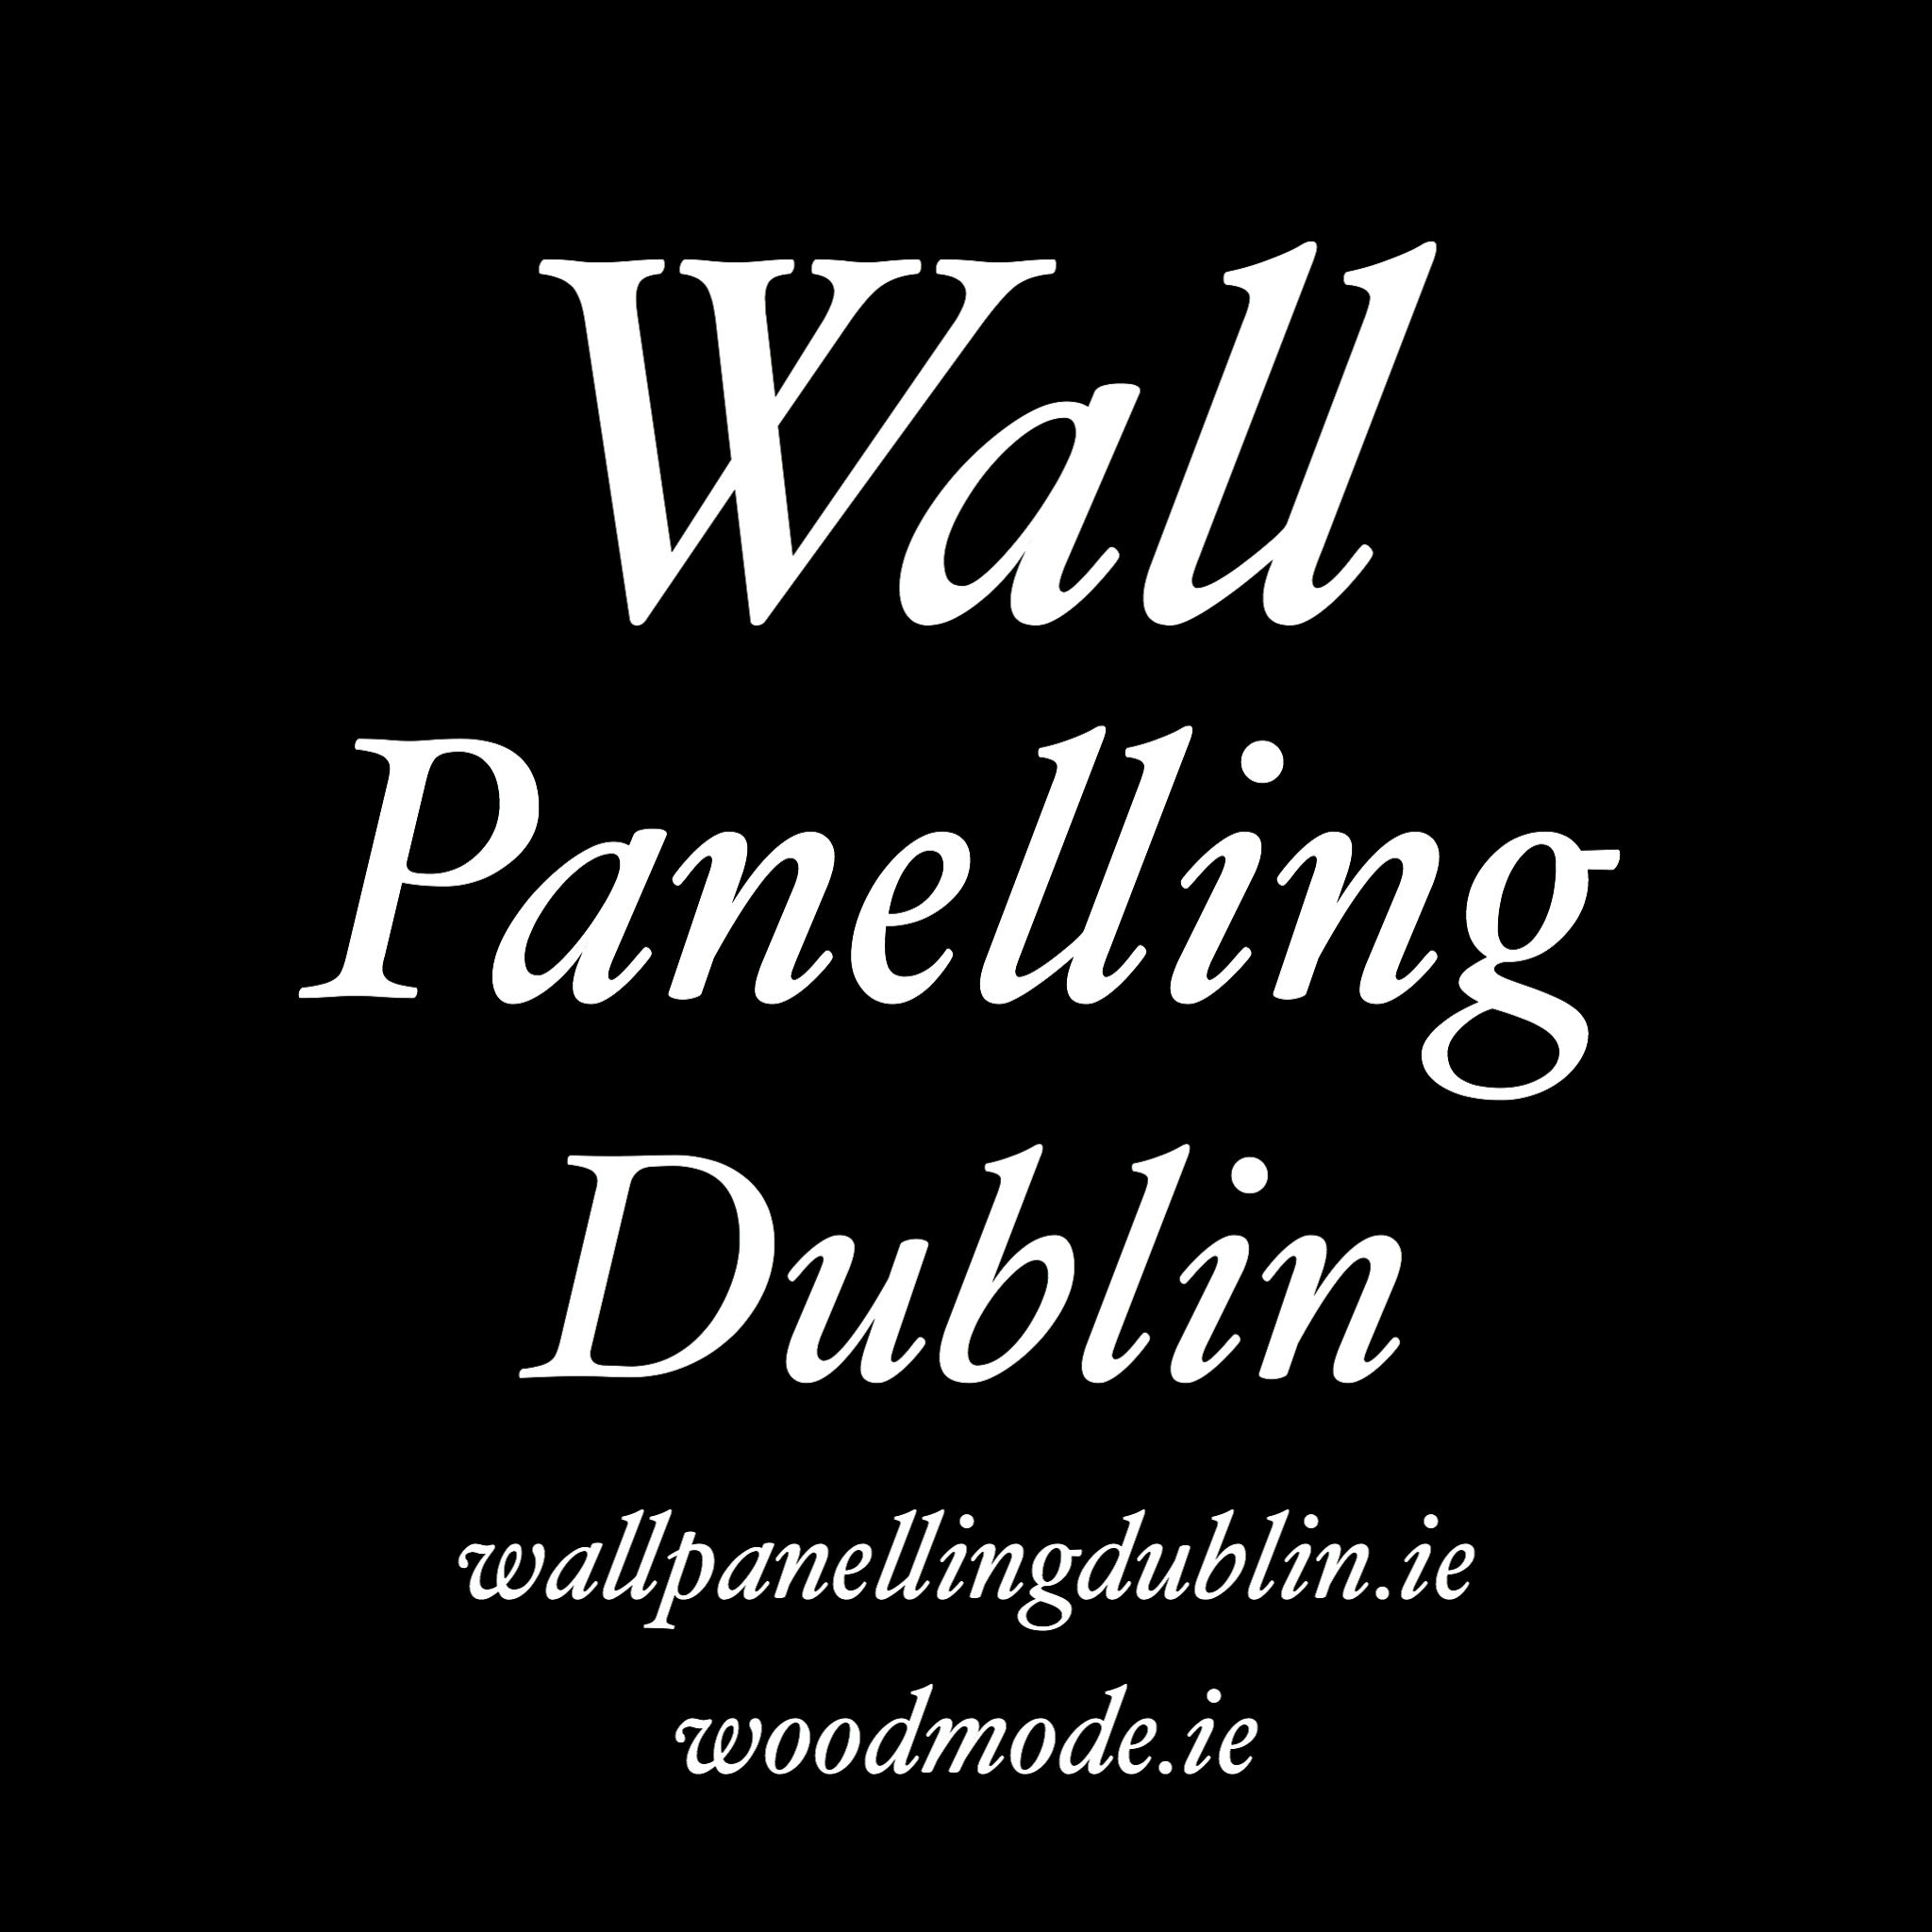 Wall Panelling Dublin